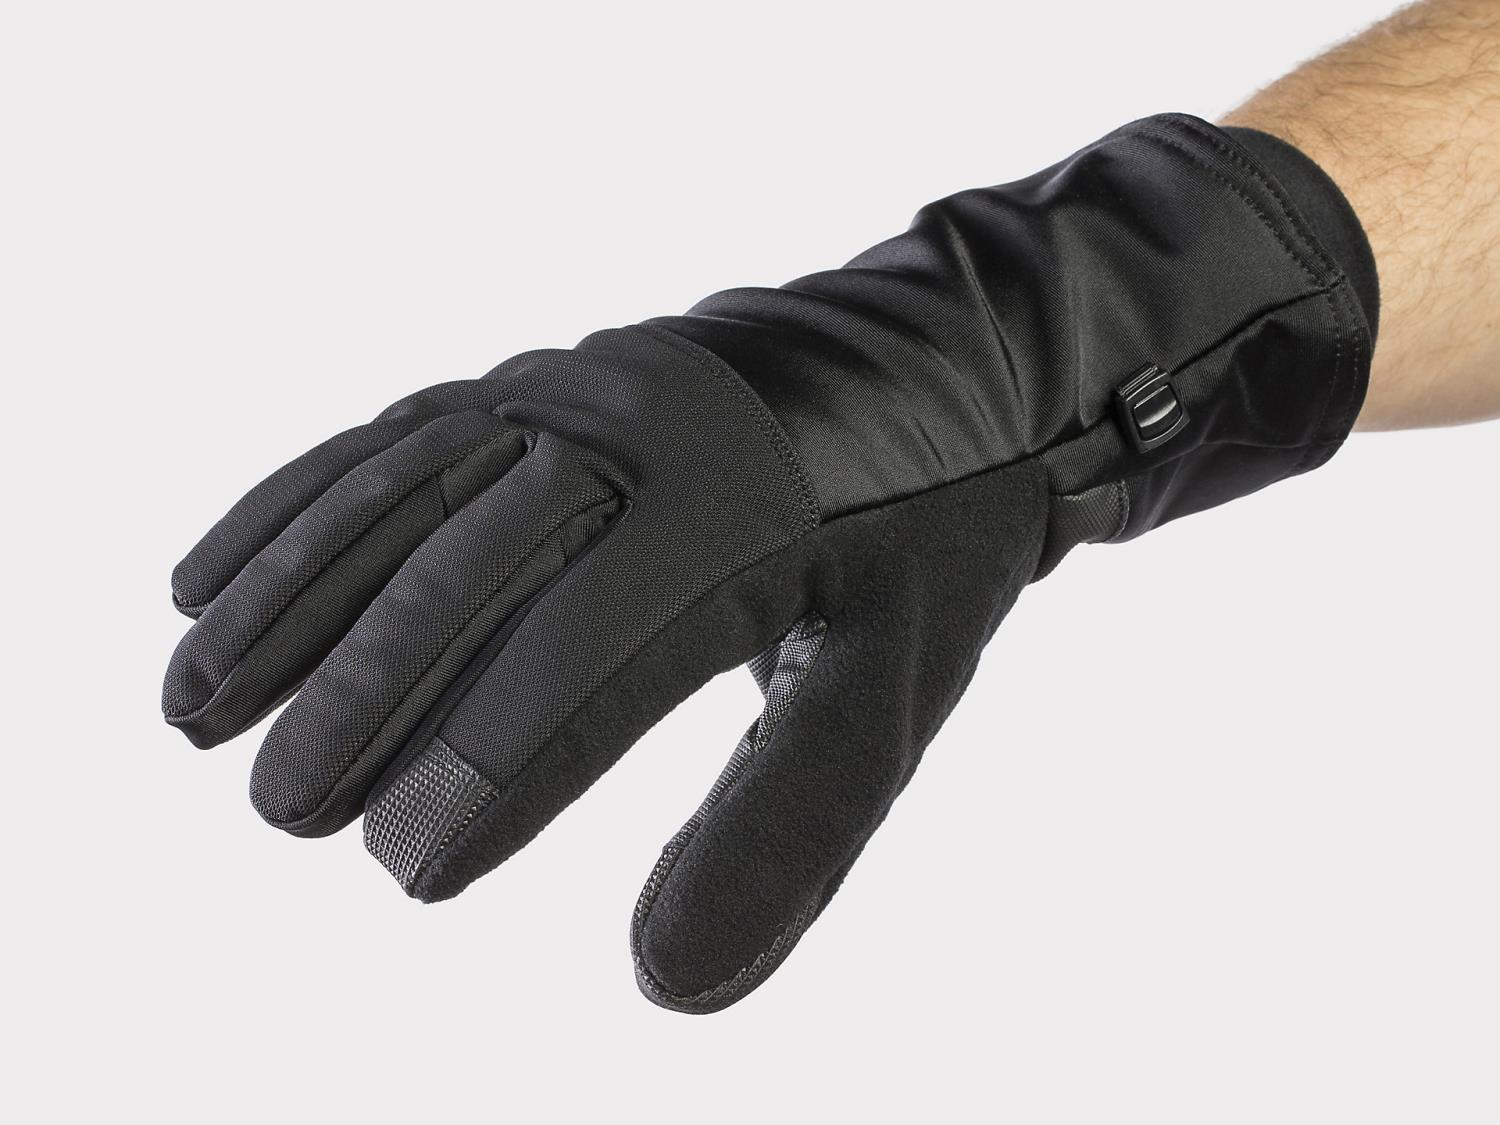 Bontrager Velocis Waterproof Winter Cycling Glove